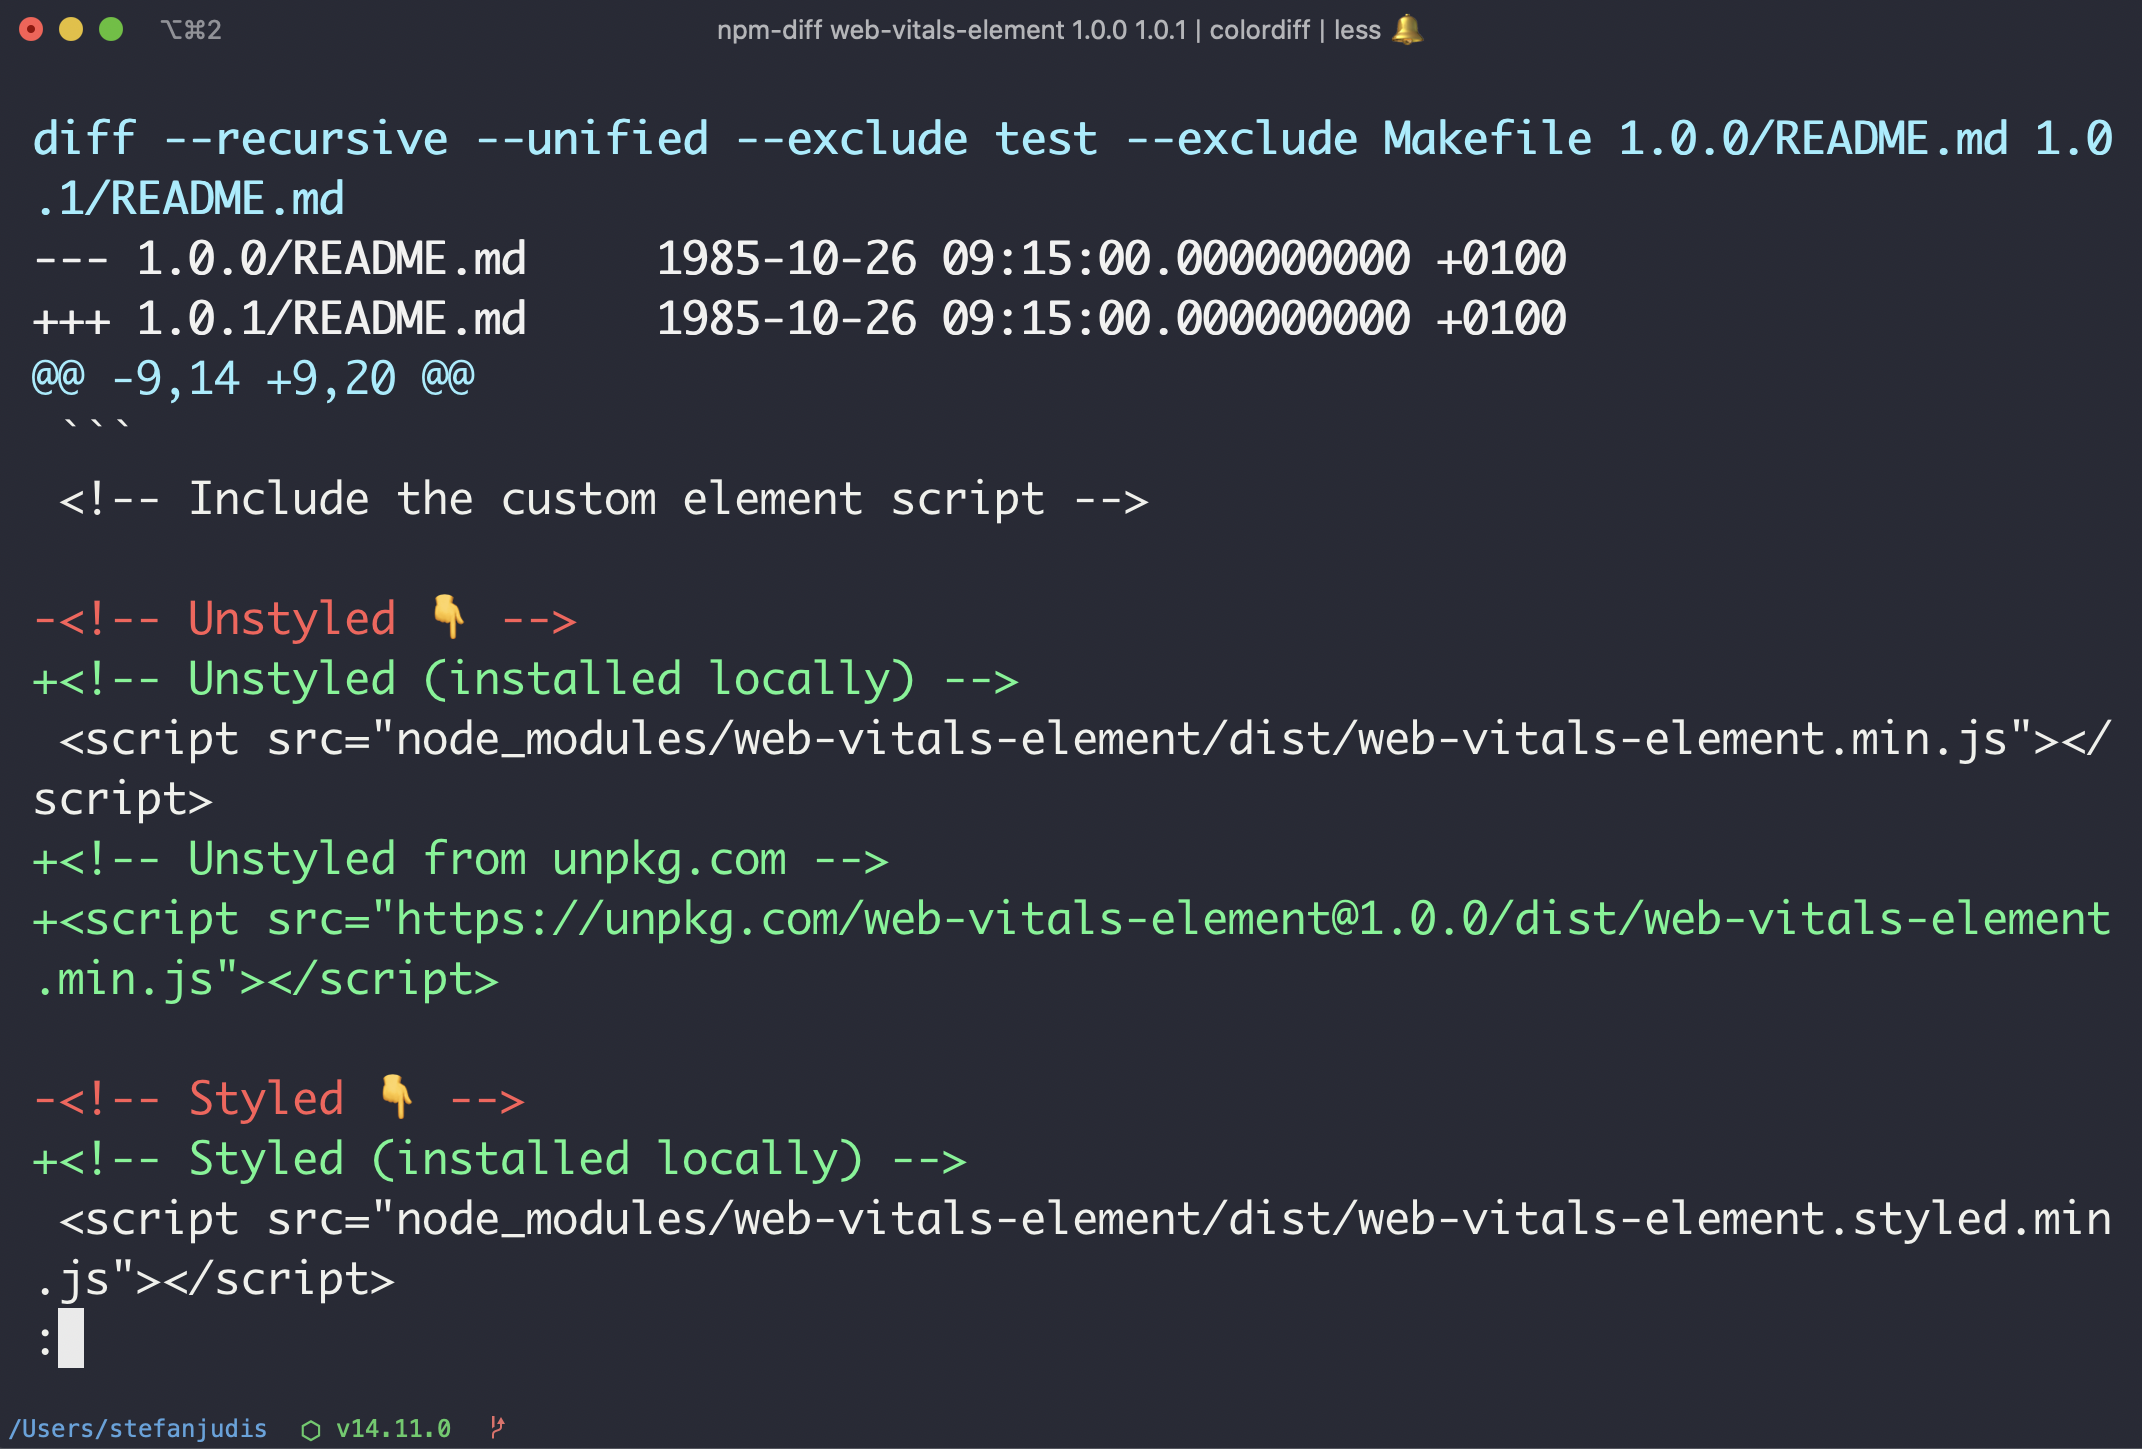 CLI output of color npm-diff command using colordiff